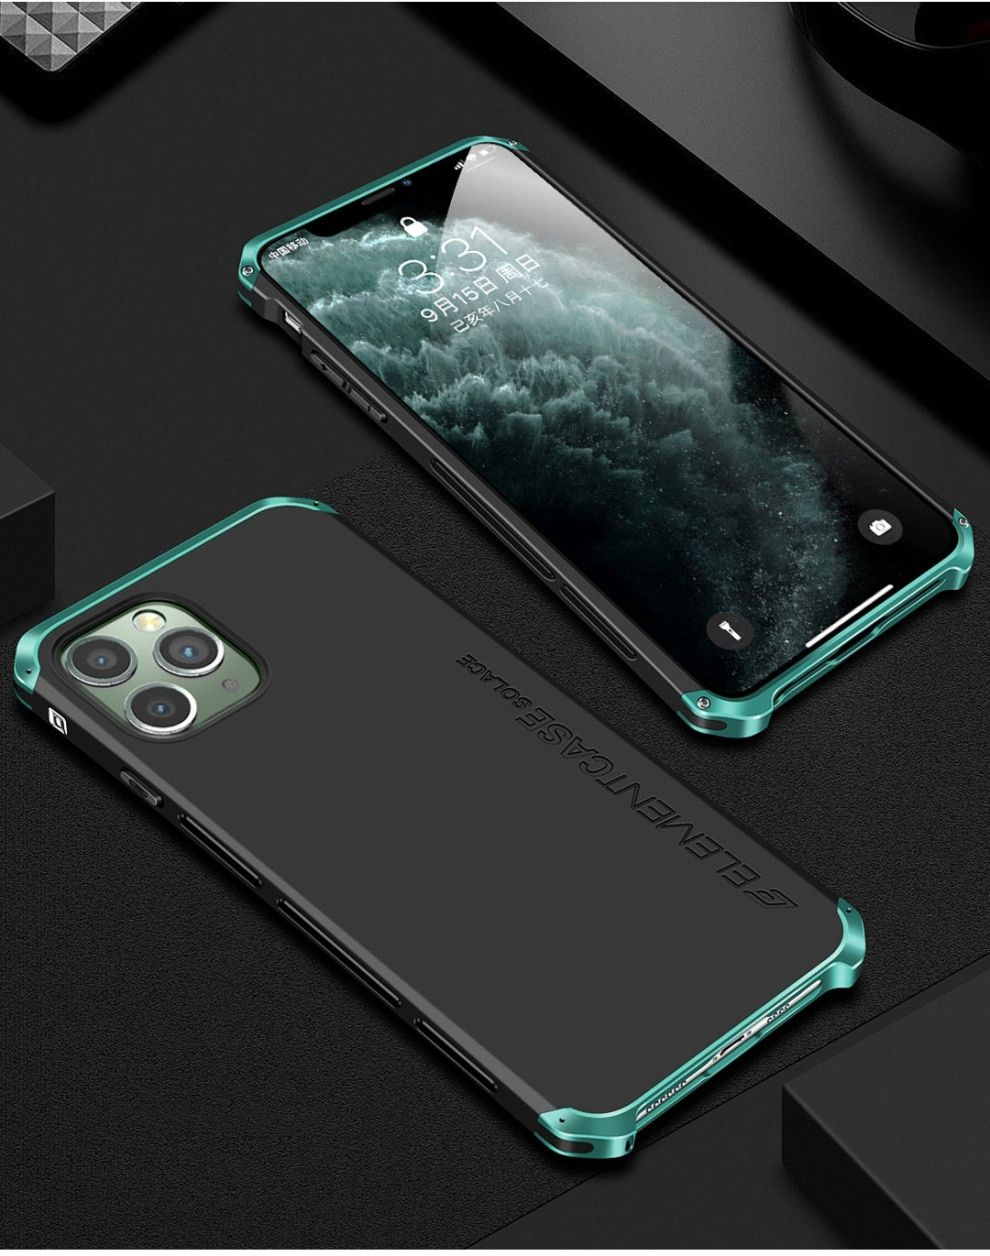 Luxury Shockproof Armor Element Metal Case For Iphone 11 Pro Max Cases Hard Aluminium Plastic Case For Iphone 11/ Pro/ Max Cover-In Fitted Cases